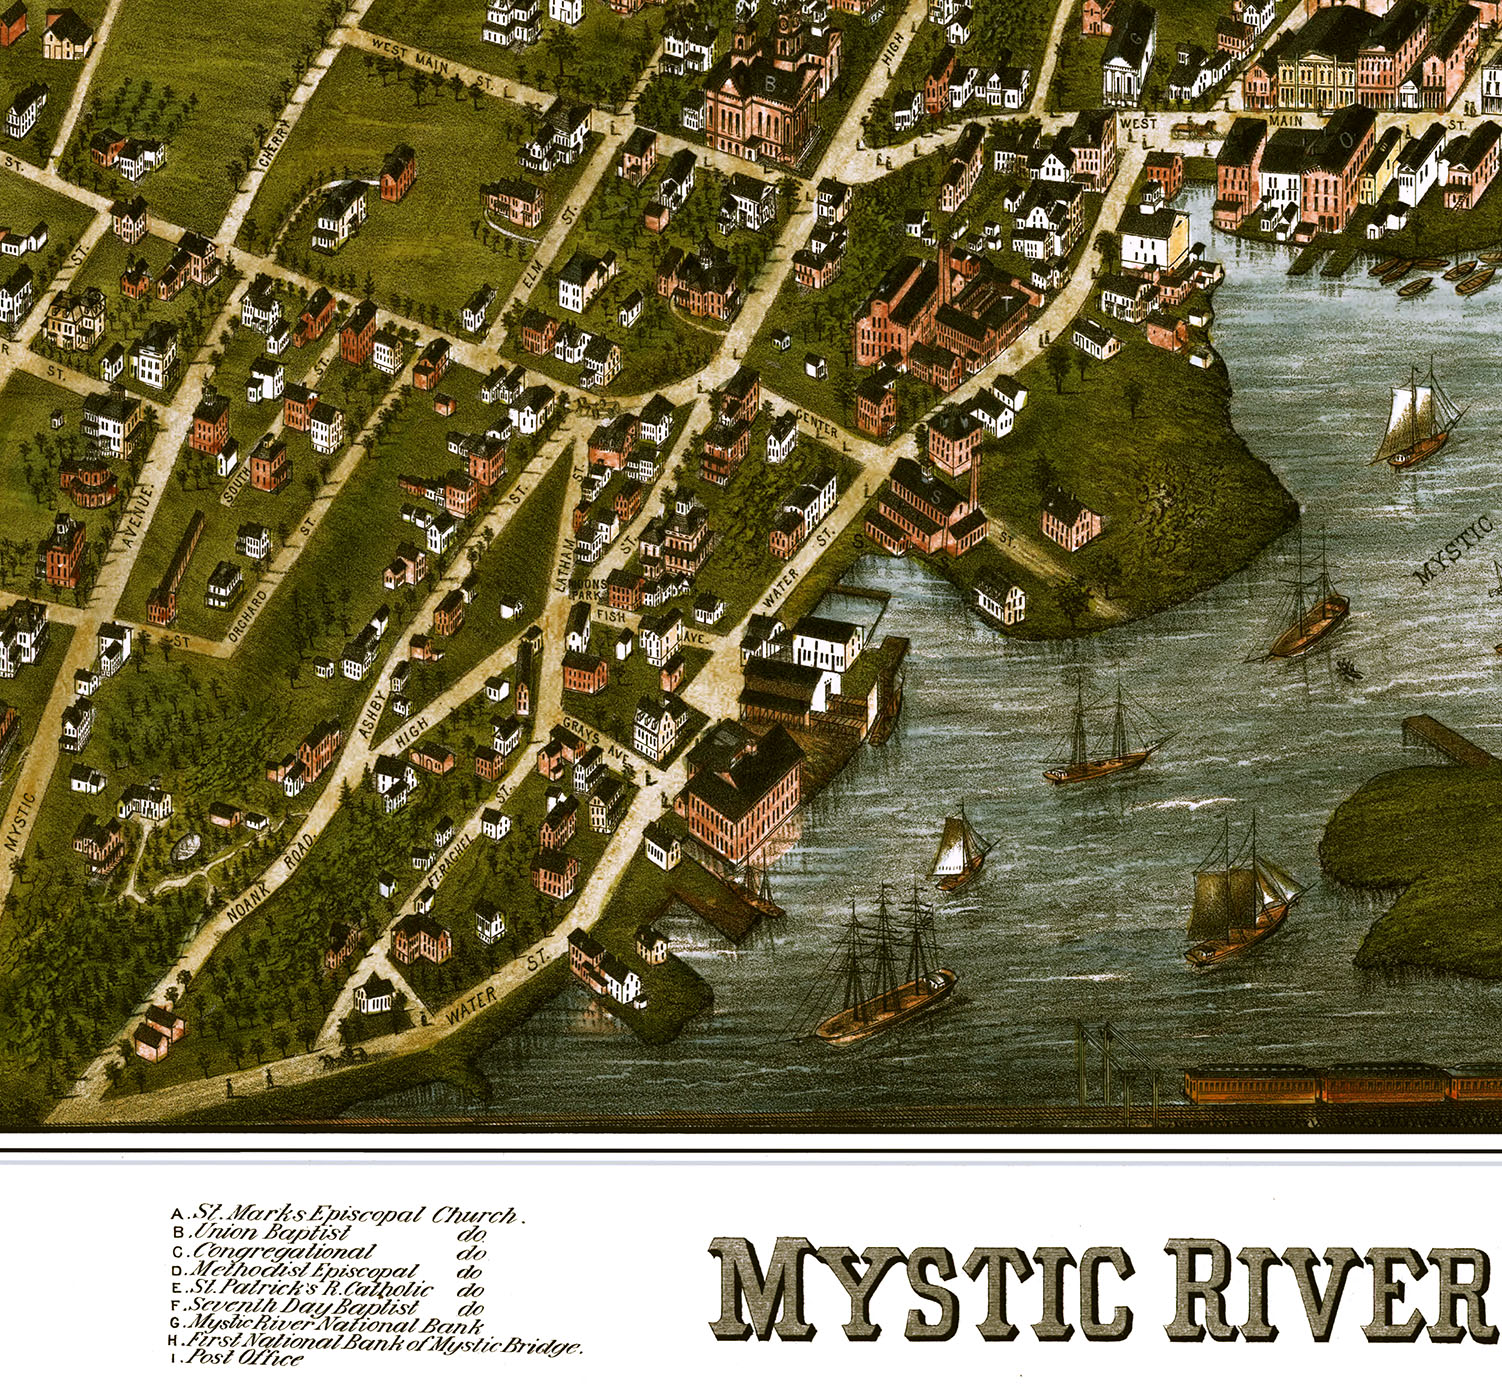 Mystic River, CT & Mystic Bridge in 1879 - Bird's Eye View, Aerial on map of indiana covered bridges, map of connecticut, map of hampton nh, map of eastern kentucky cities, mashapaug lake union ct, map downtown new london ct, map of paul st, map of pine st, map of uniontown, map of maine rivers, map of south st, map of franklin st, map of covered bridges ashtabula county ohio,